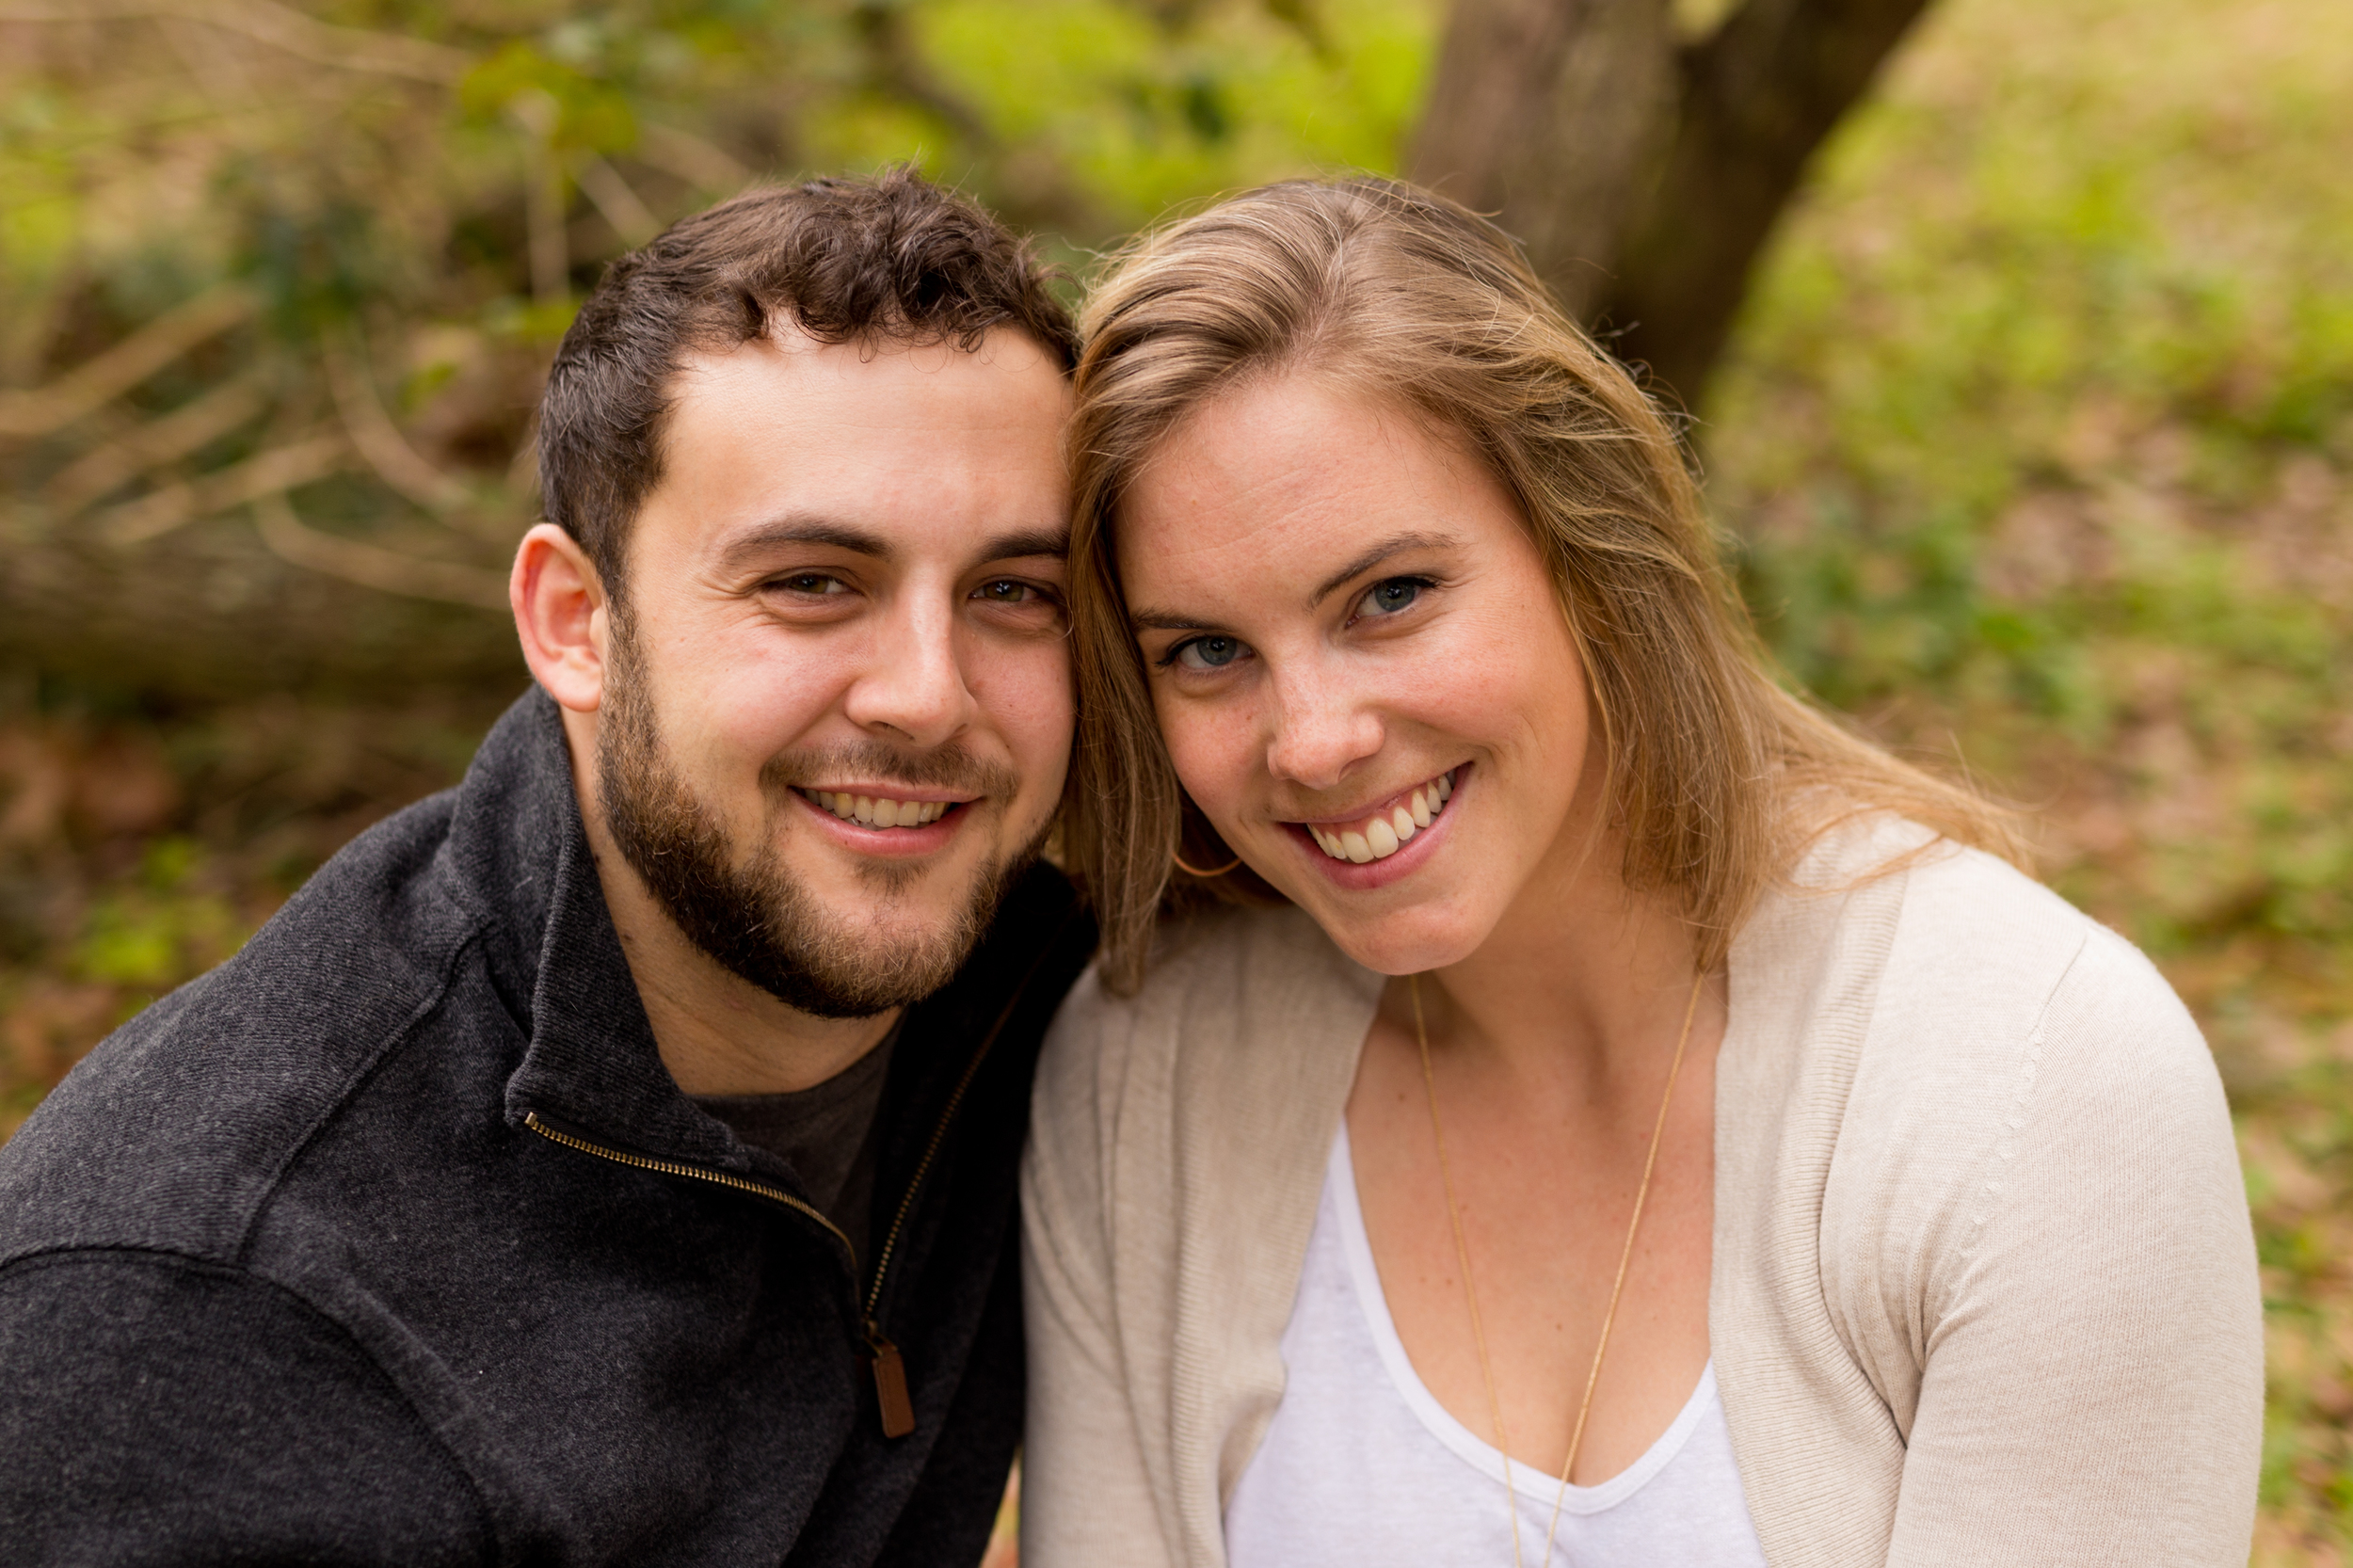 cute couple smiling outdoors